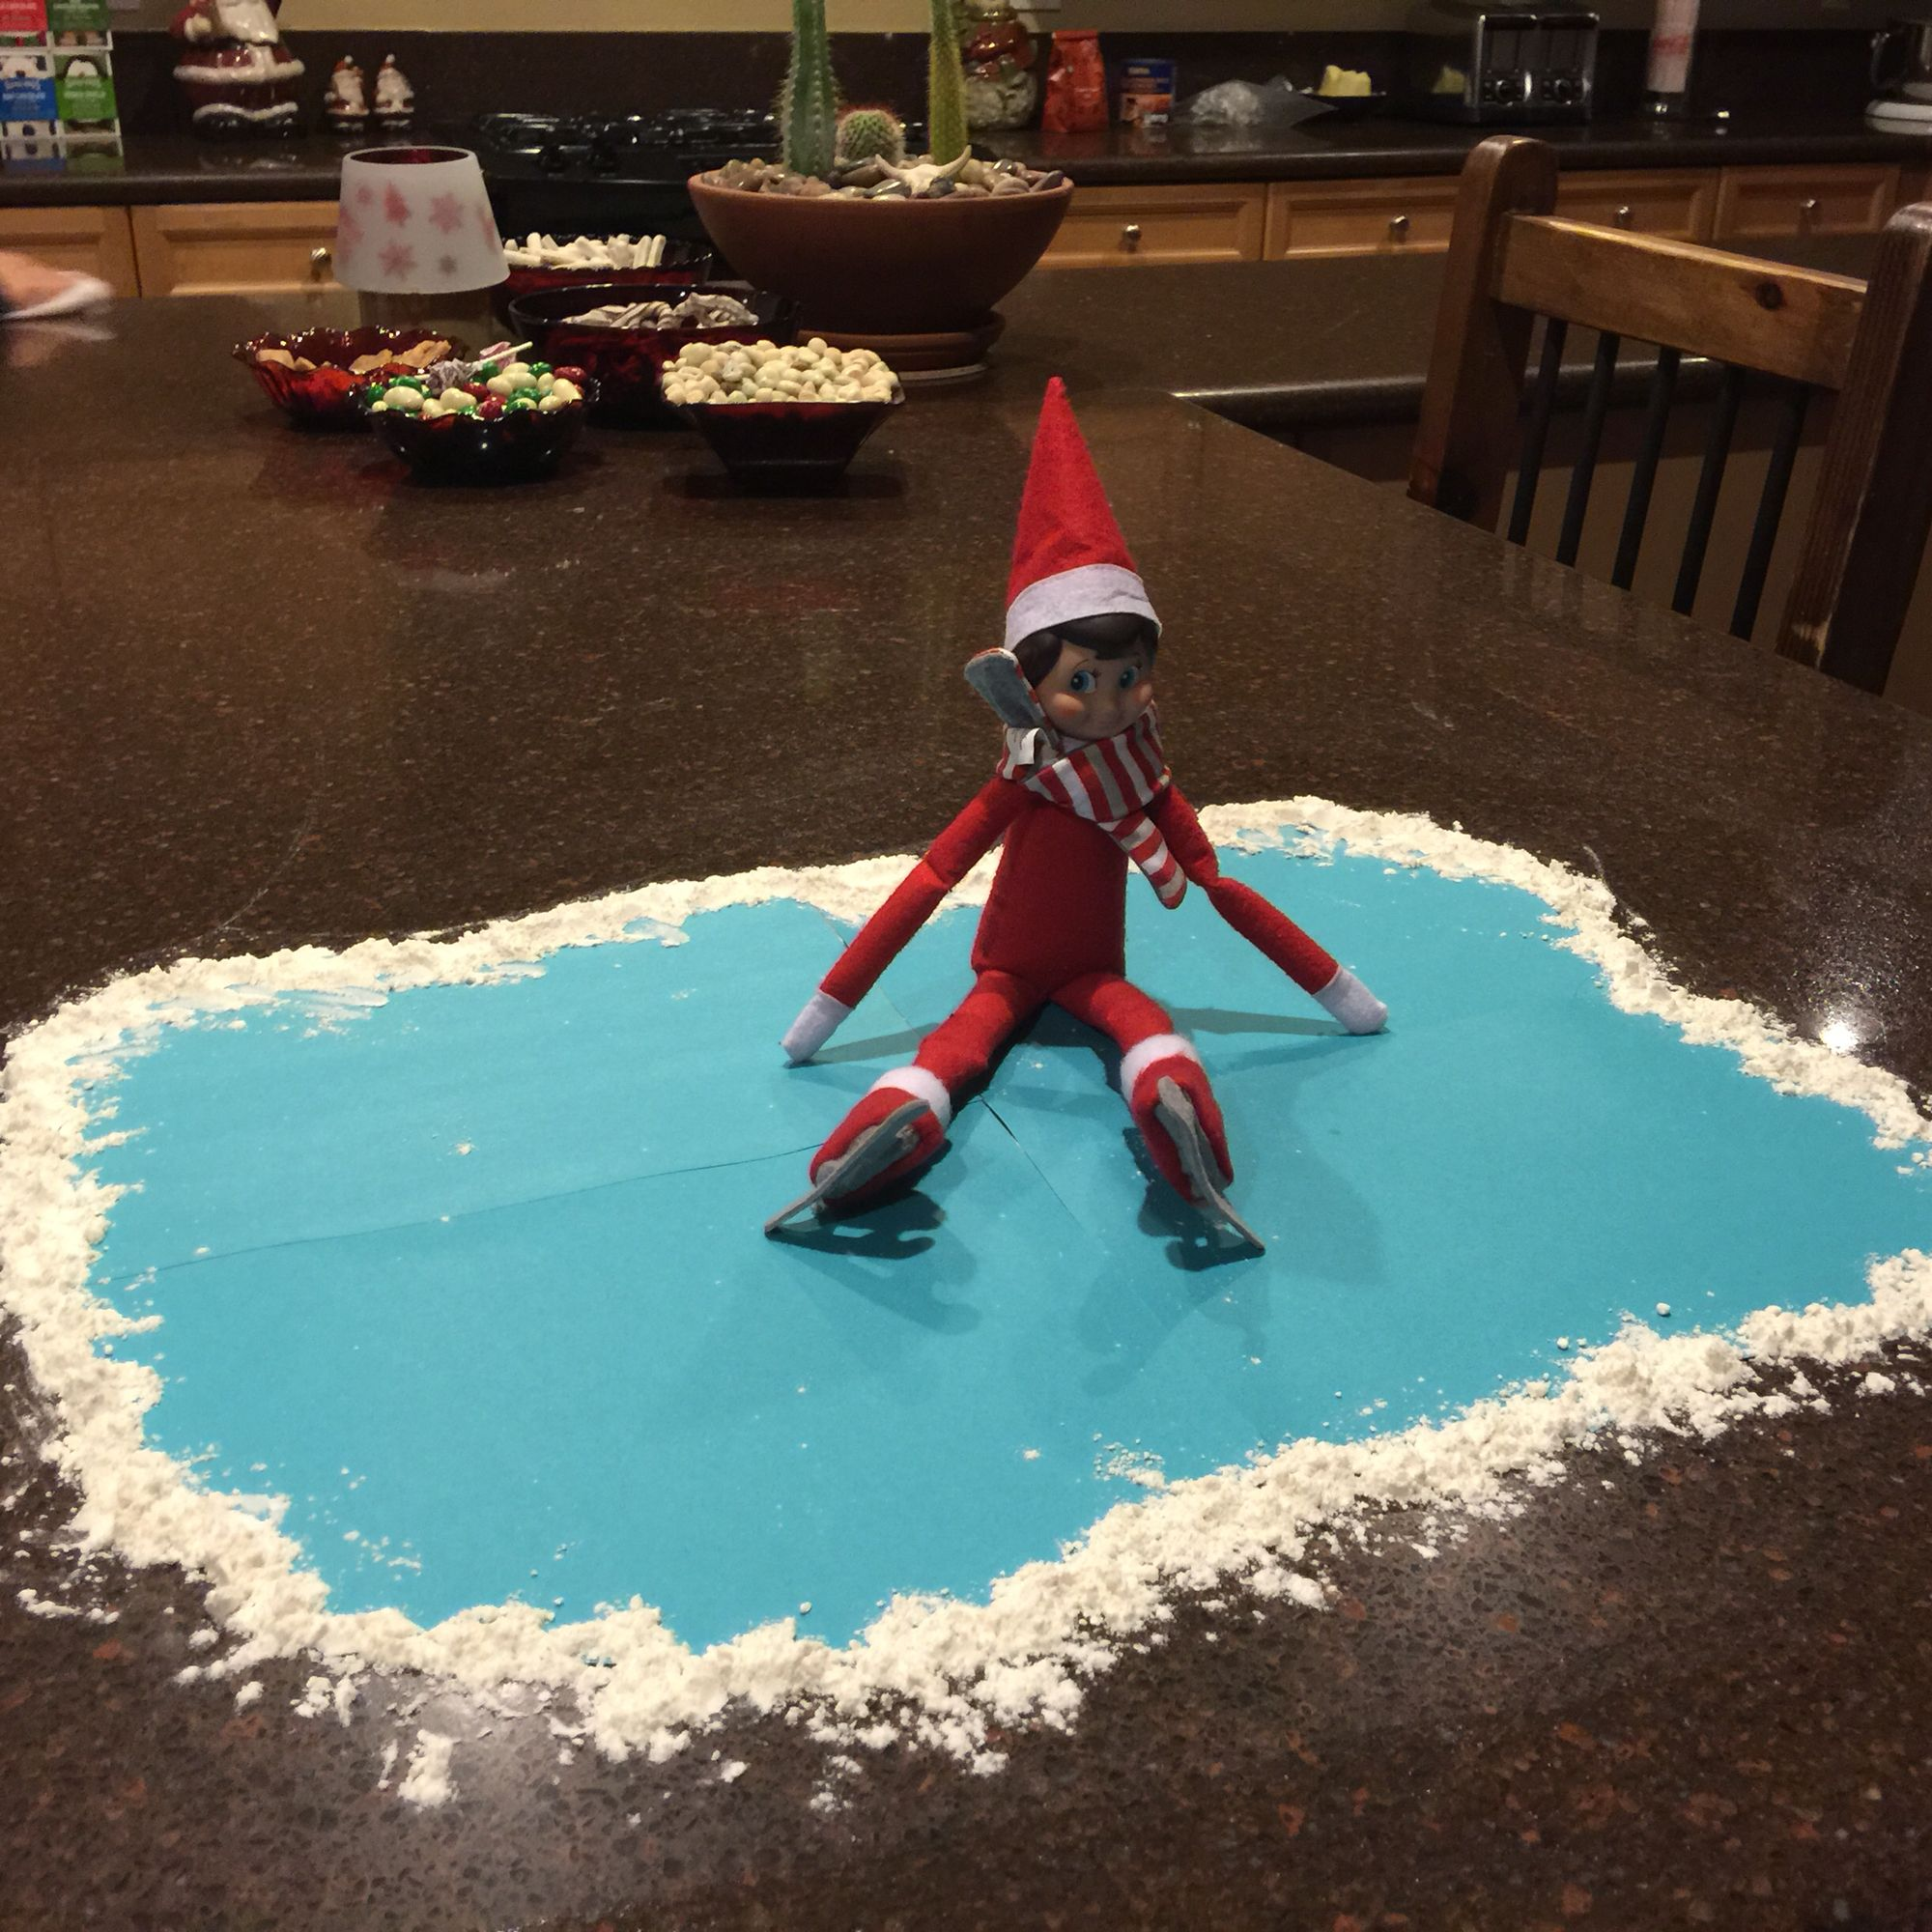 Christmas Ice Skating Rink Decoration: Elves, Shelves And